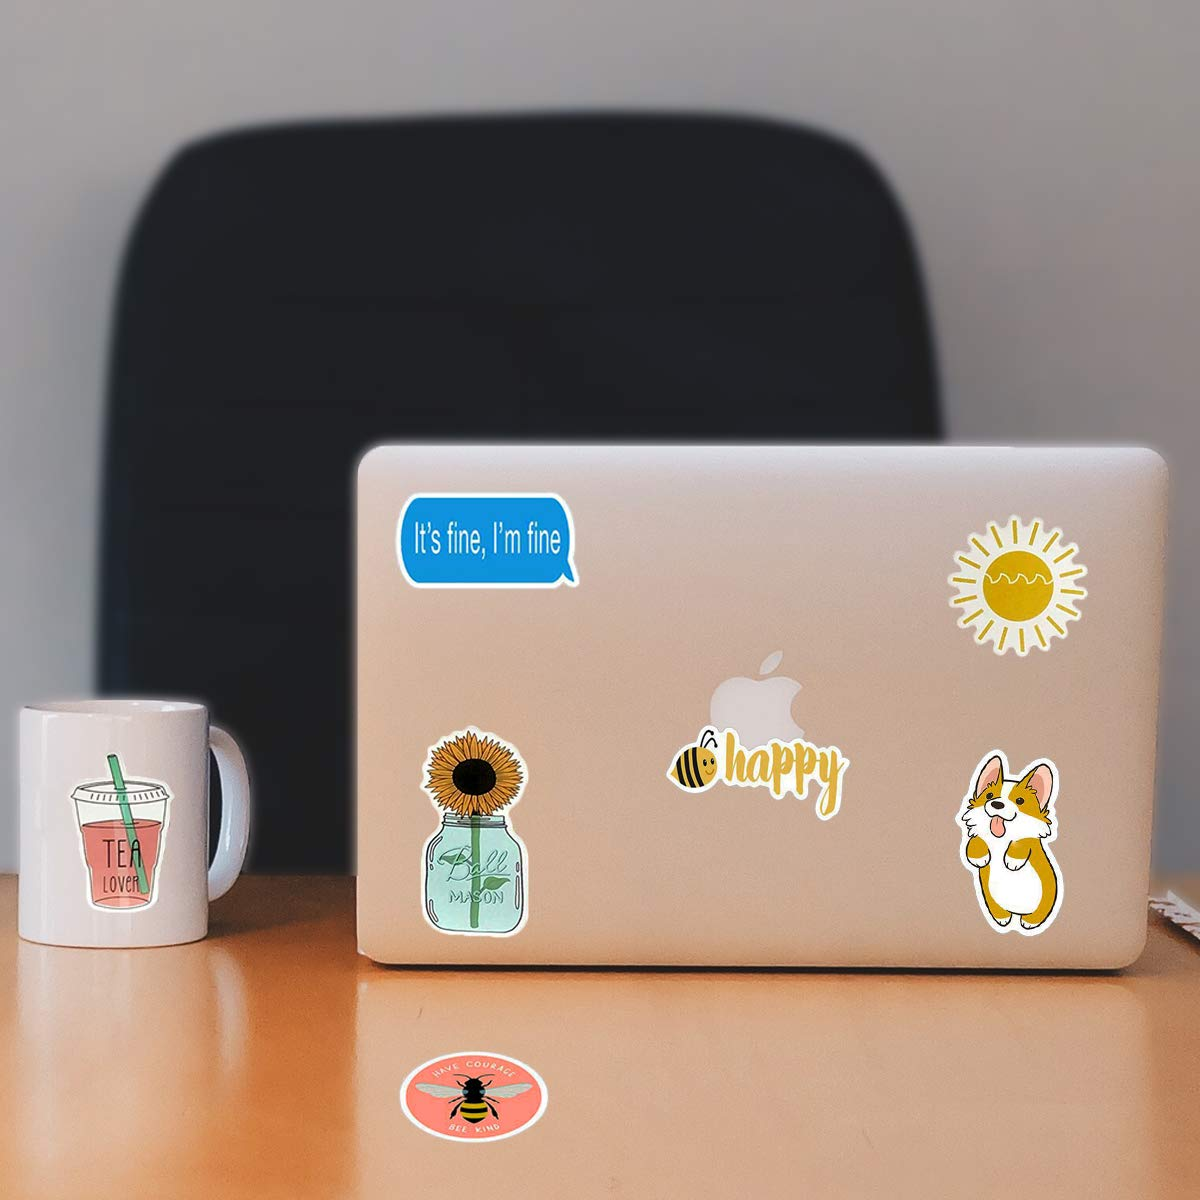 Cute VSCO Stickers for Hydro Flask Water Bottles, Trendy Laptop Stickers, Waterproof Vinyl Stickers for Girls Teens Kids (50 Pack)